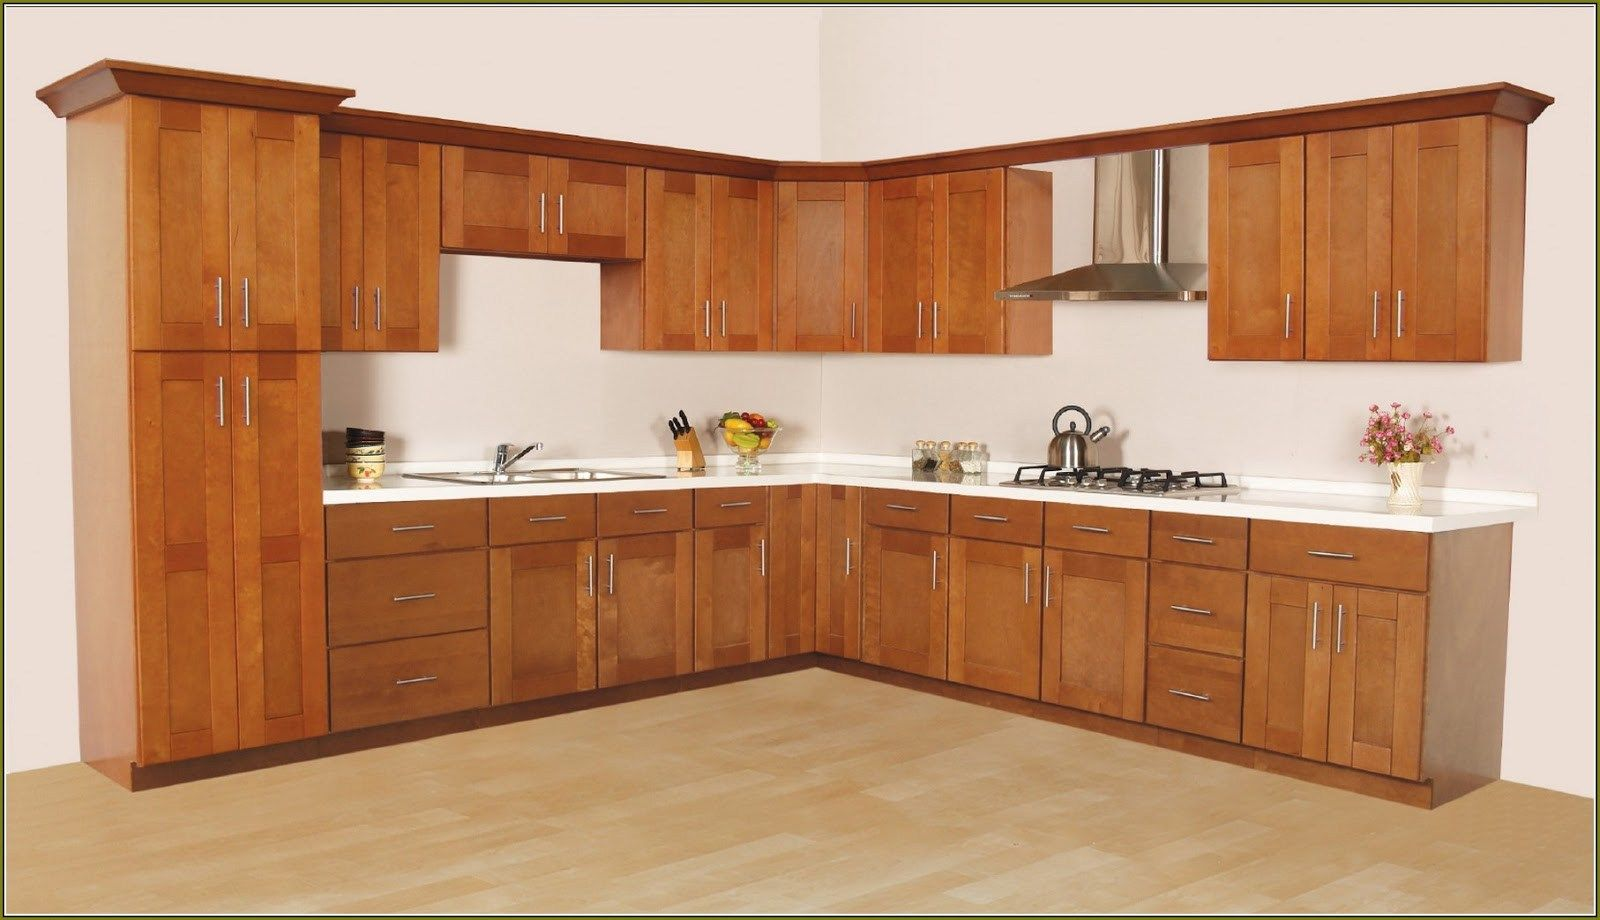 Why Unfinished Shaker Kitchen Cabinets Are Great For Remodel Unfinished Kitchen Cabinets Stock Kitchen Cabinets Kitchen Cabinet Hardware